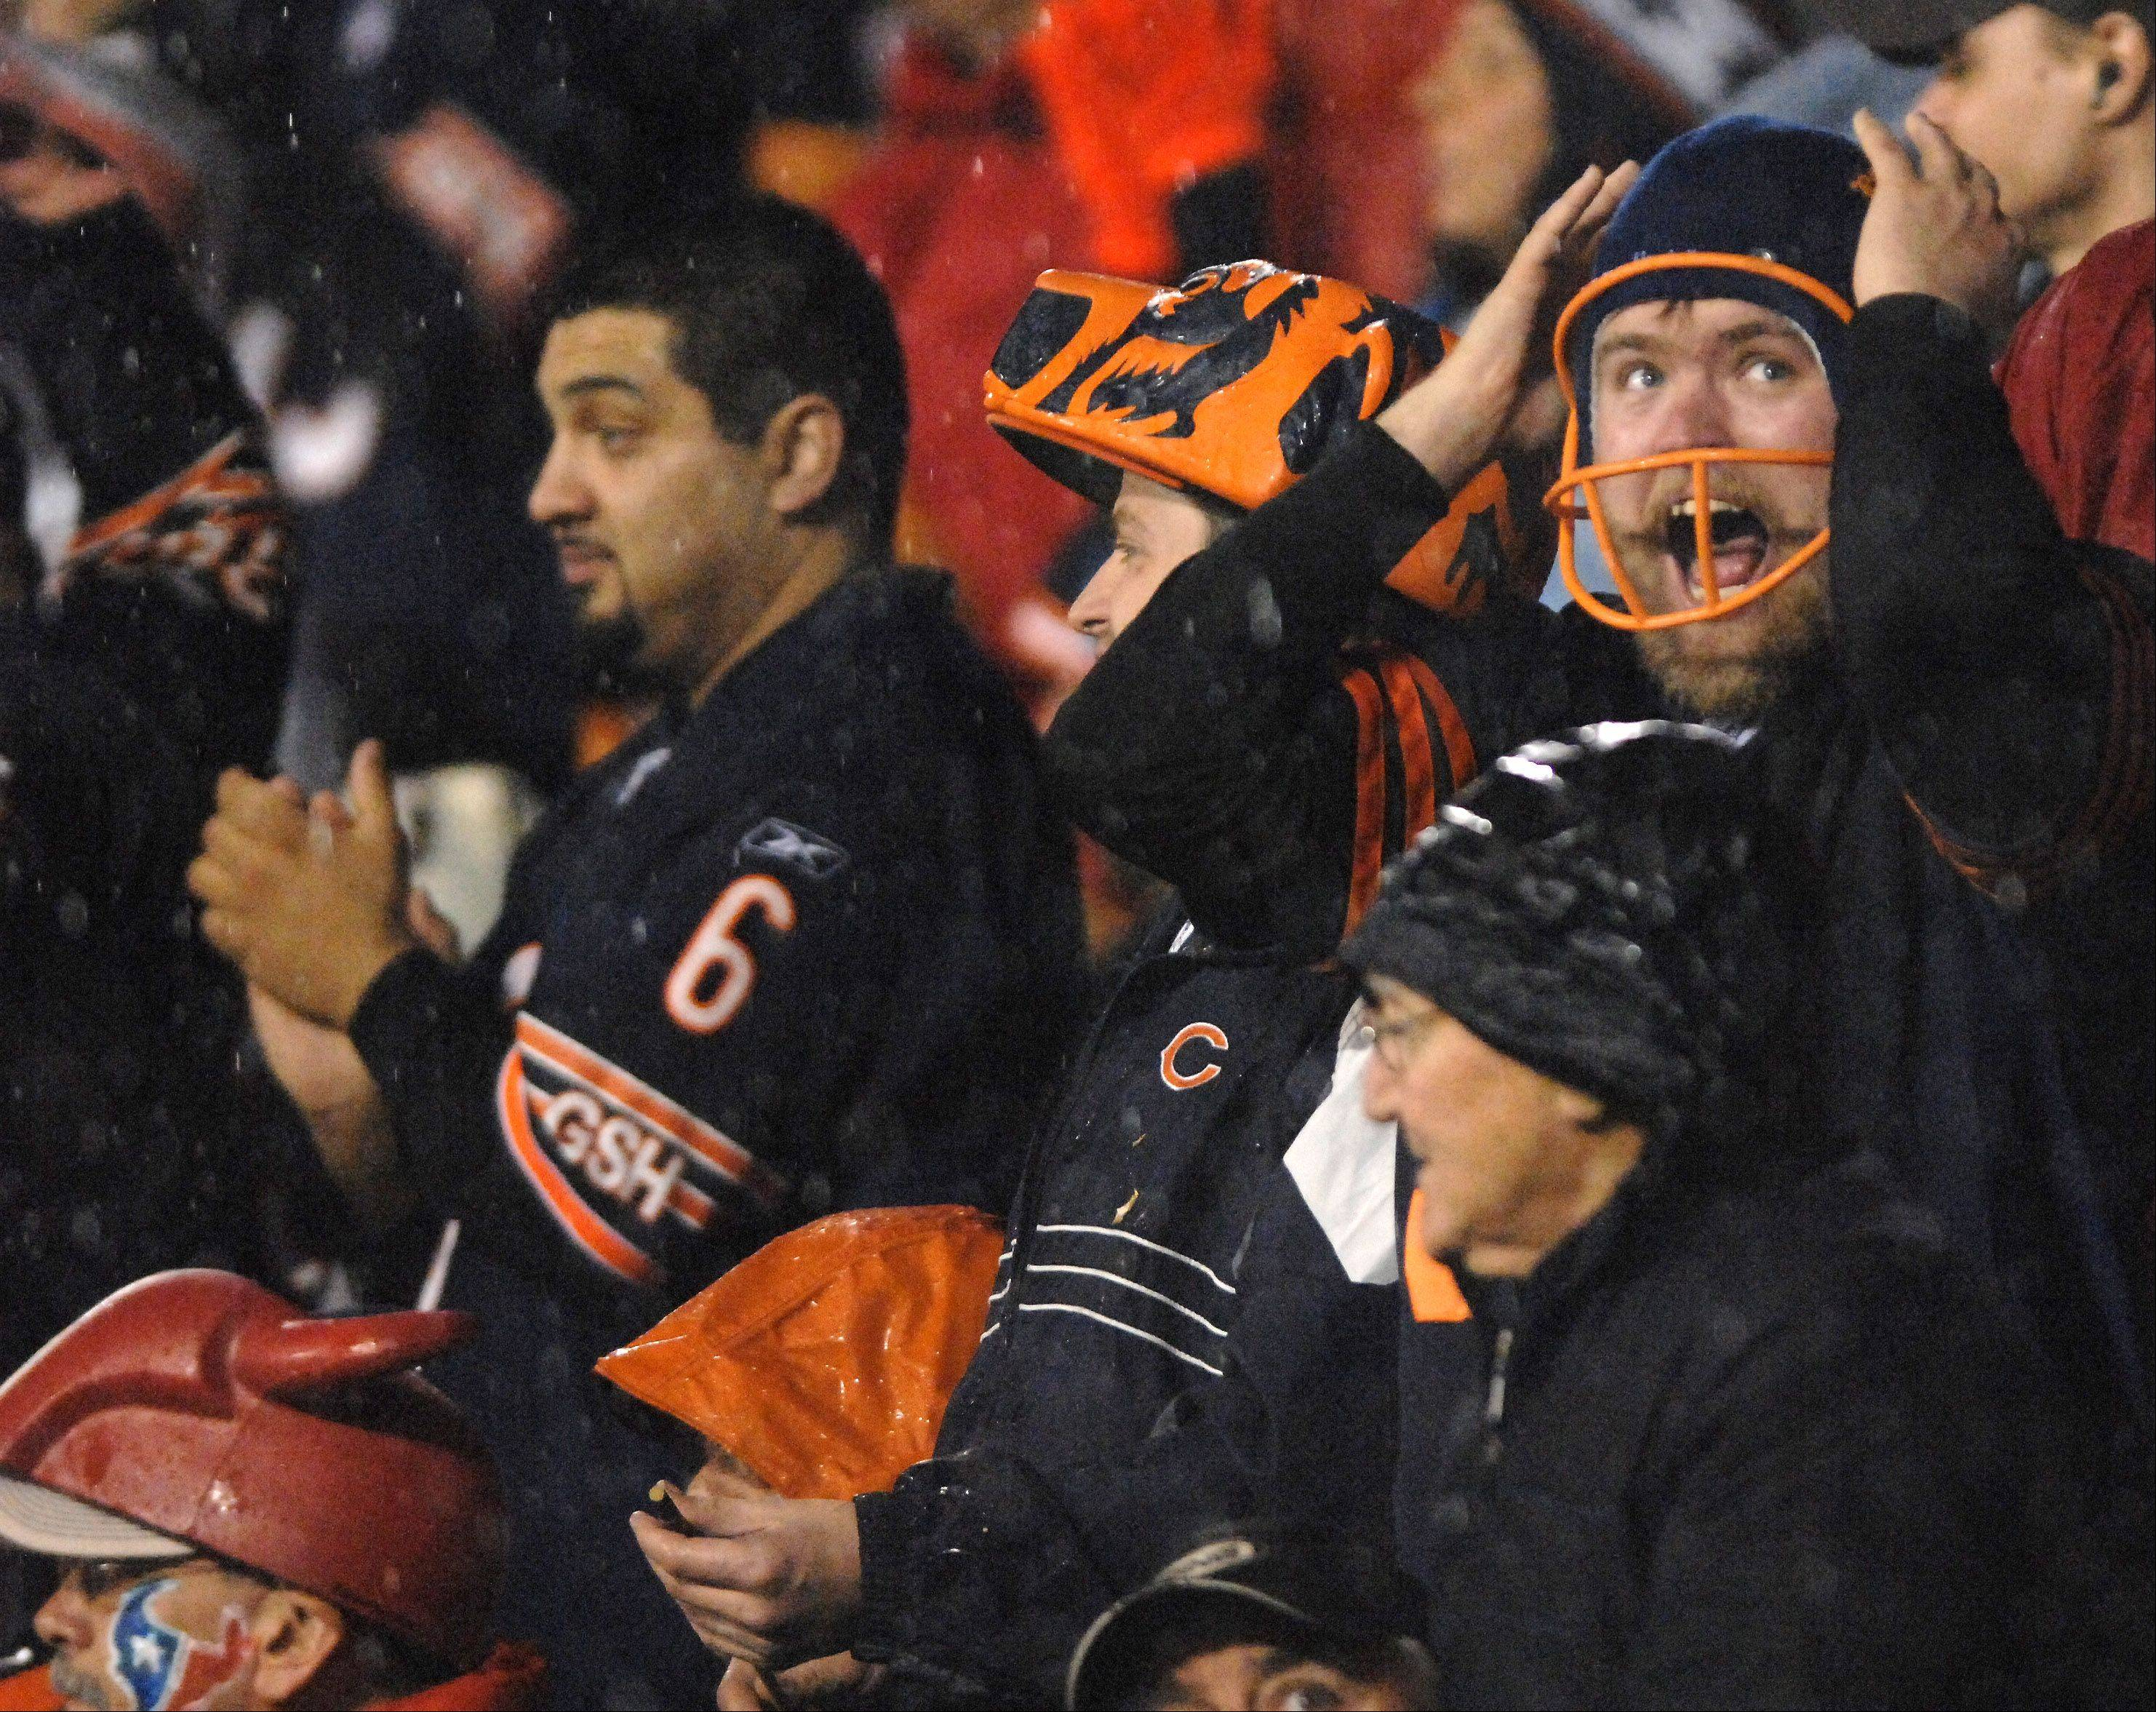 Bears fans react to the action during Sunday's game at Soldier Field in Chicago.